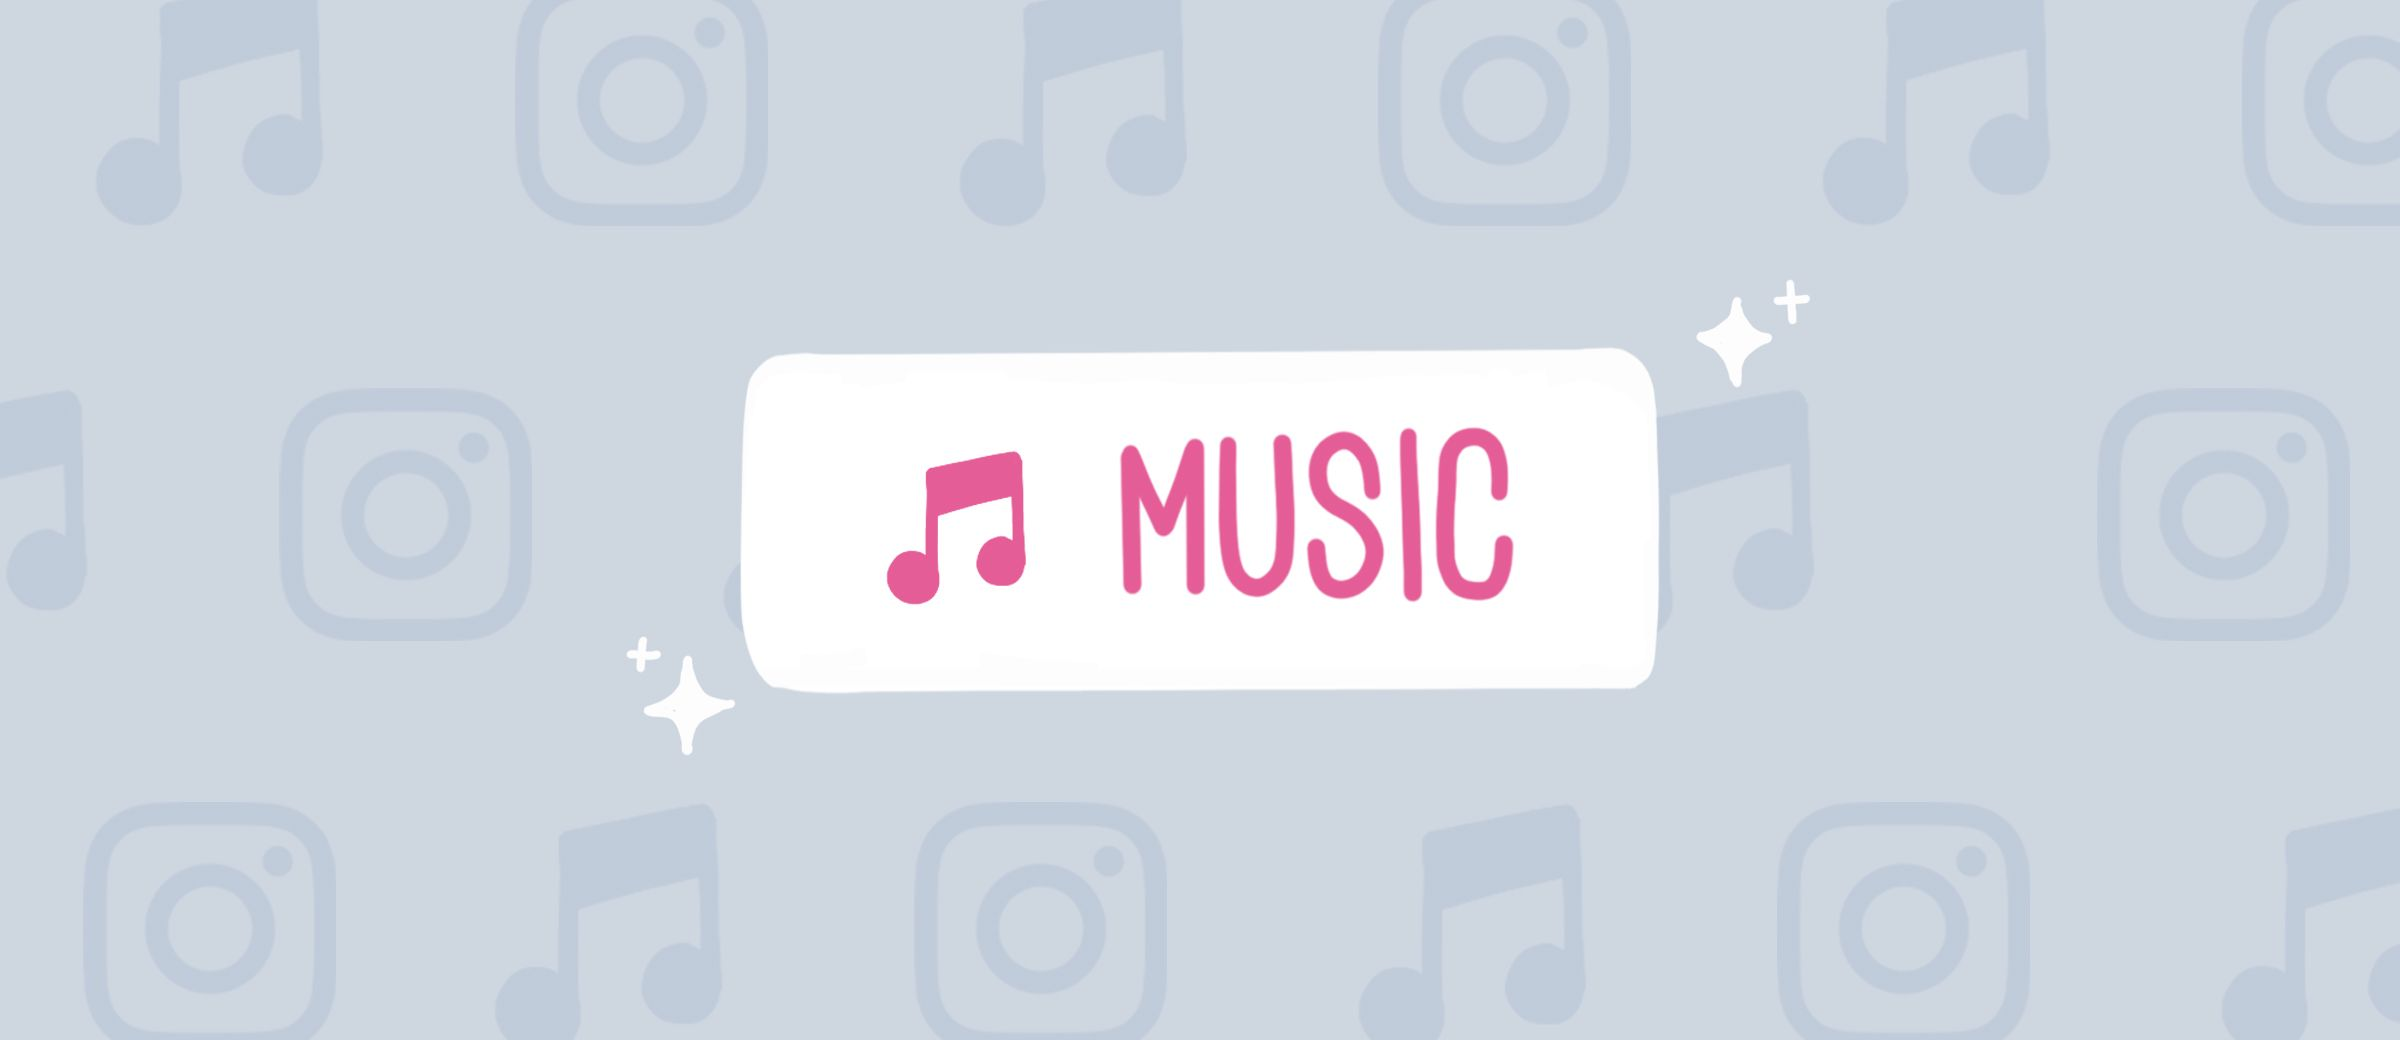 Read about How to Add Music to Instagram, on PLANOLY